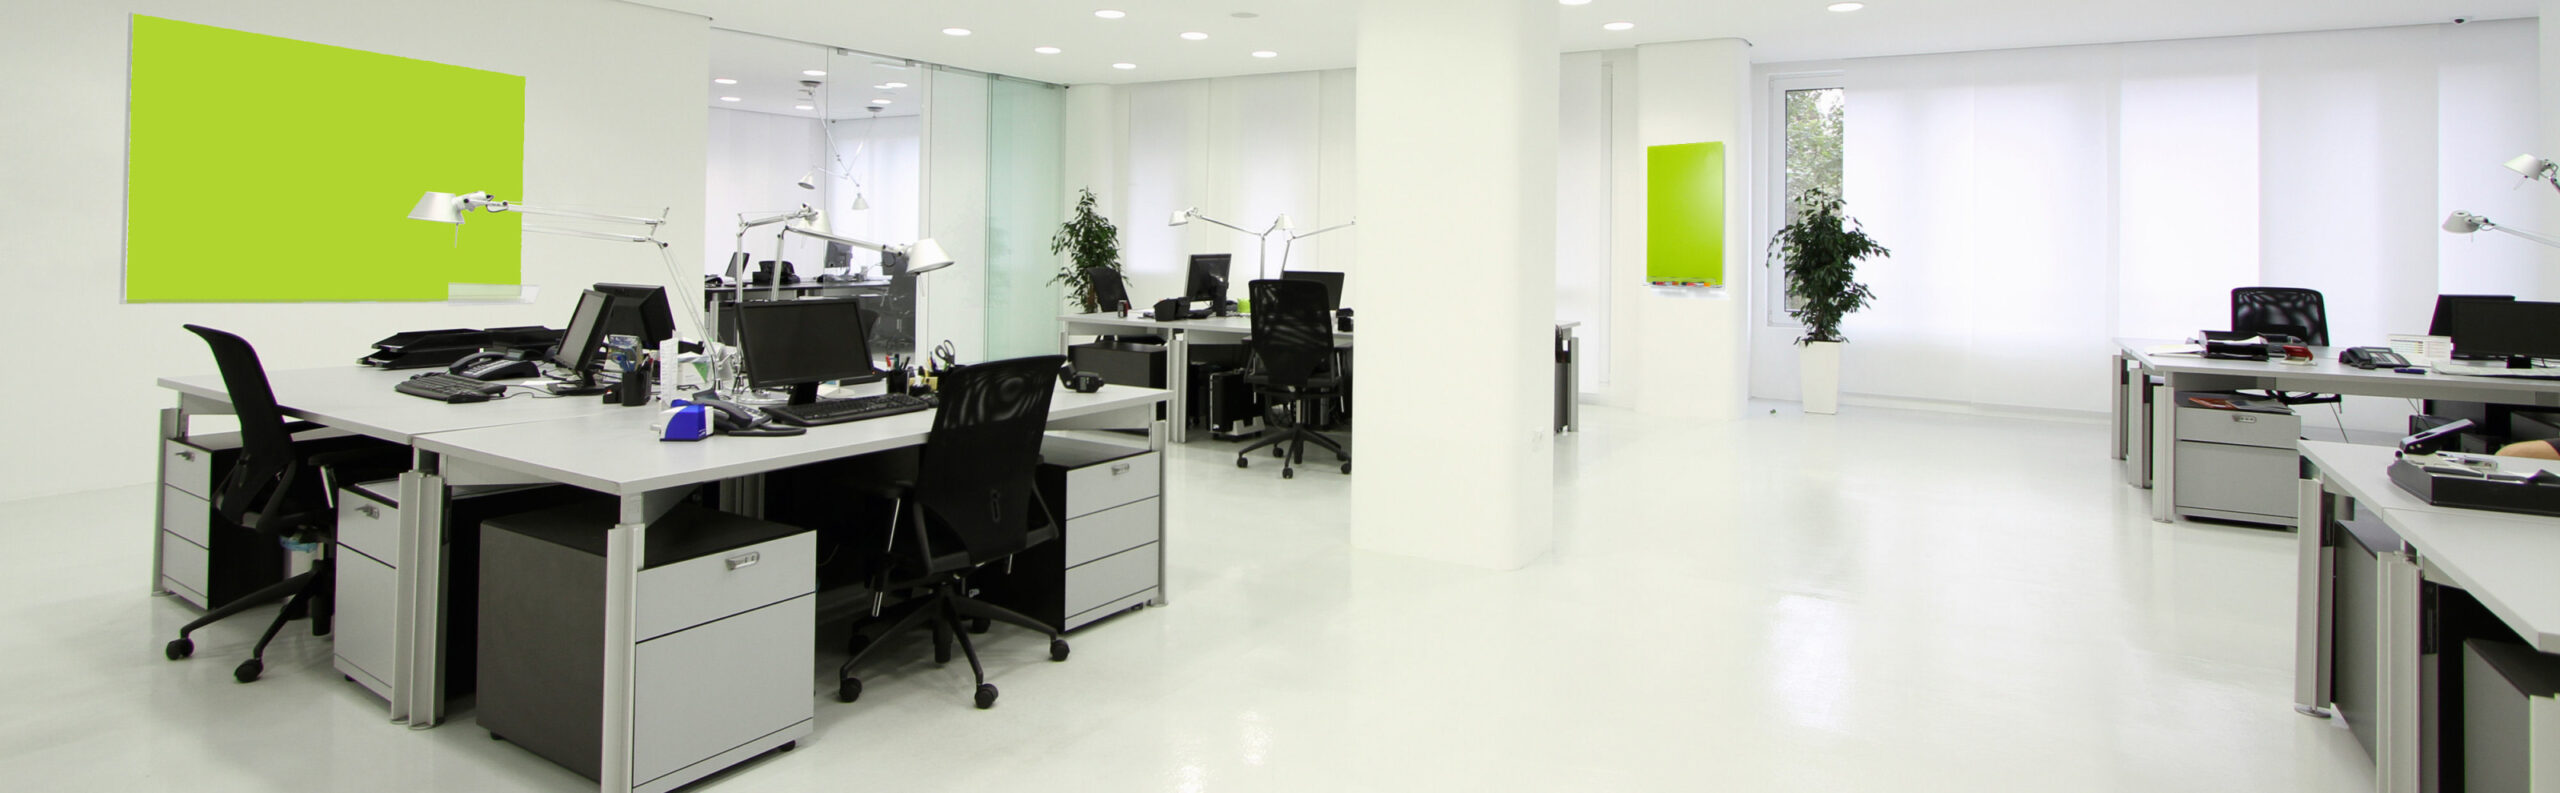 Downers-Grove-Office-Cleaning